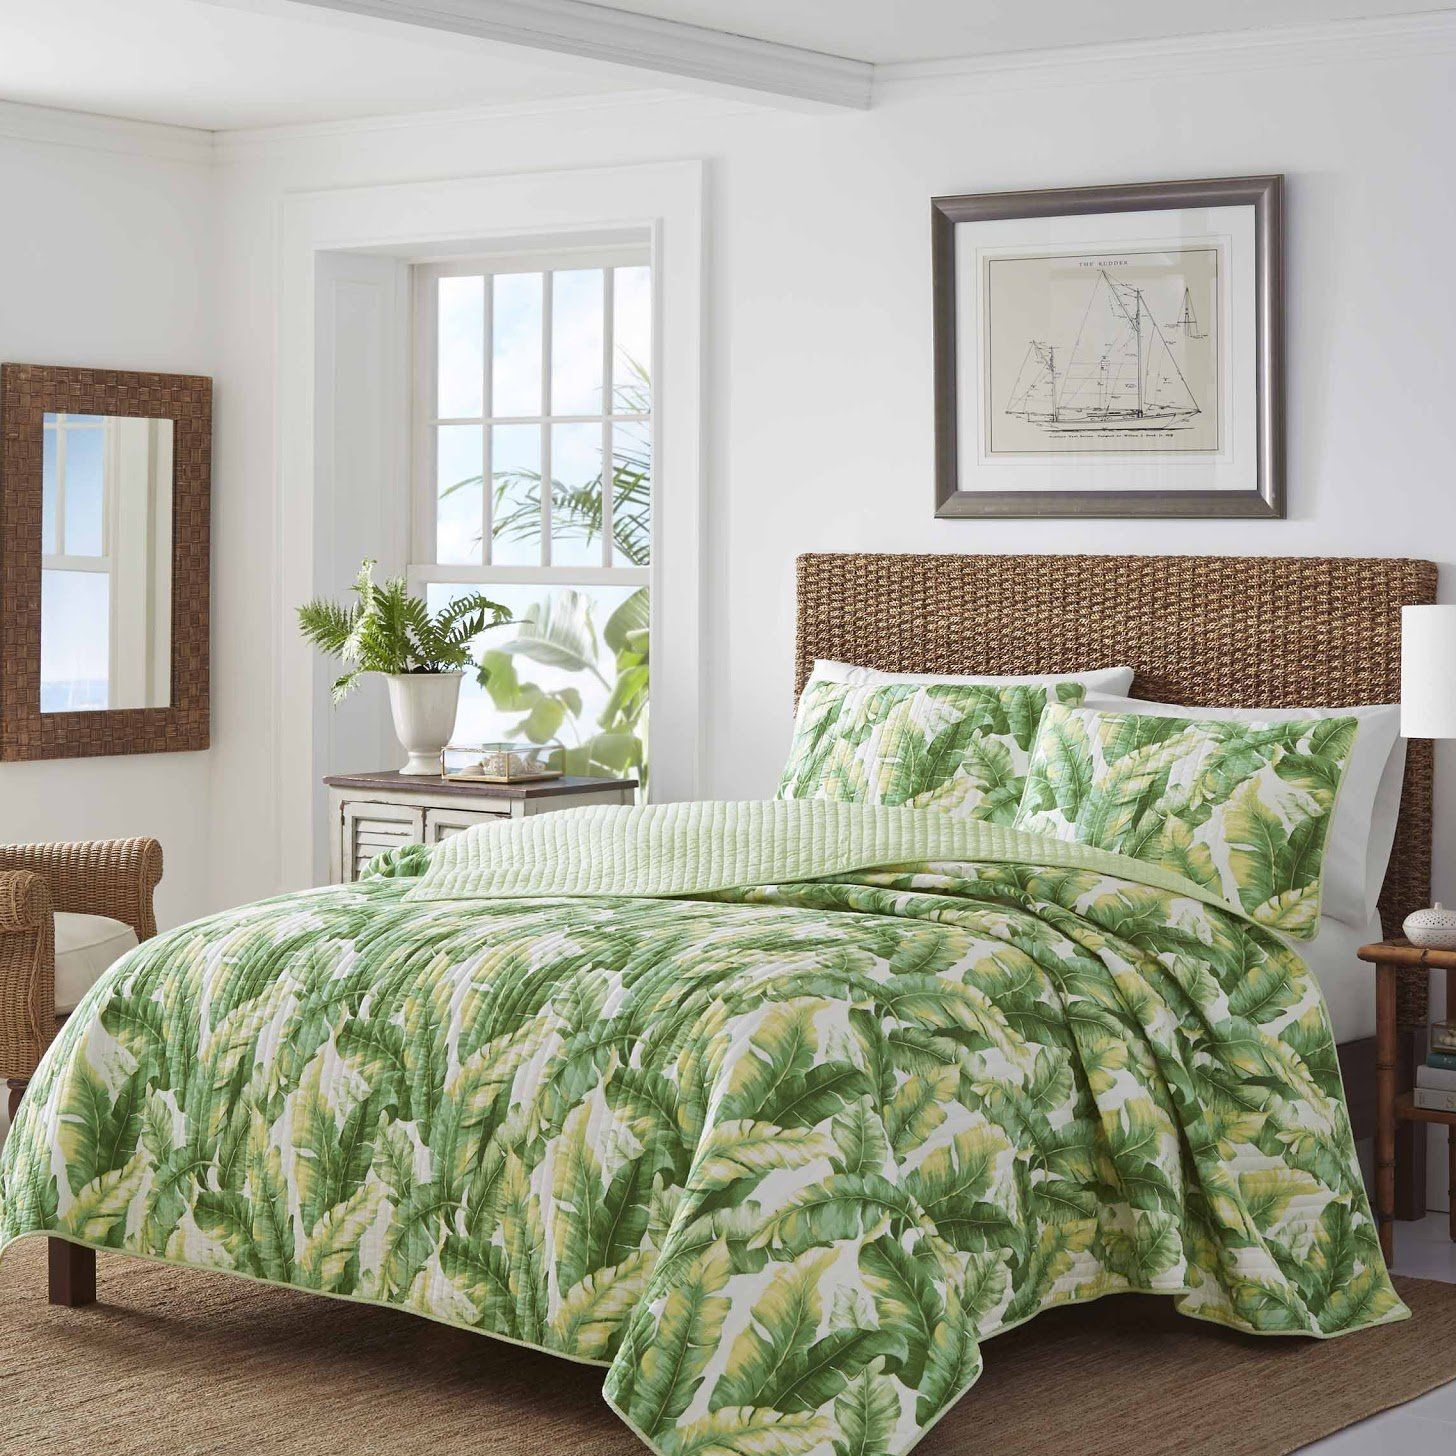 200 Coastal Bedding Sets And Beach Bedding Sets For 2020 With